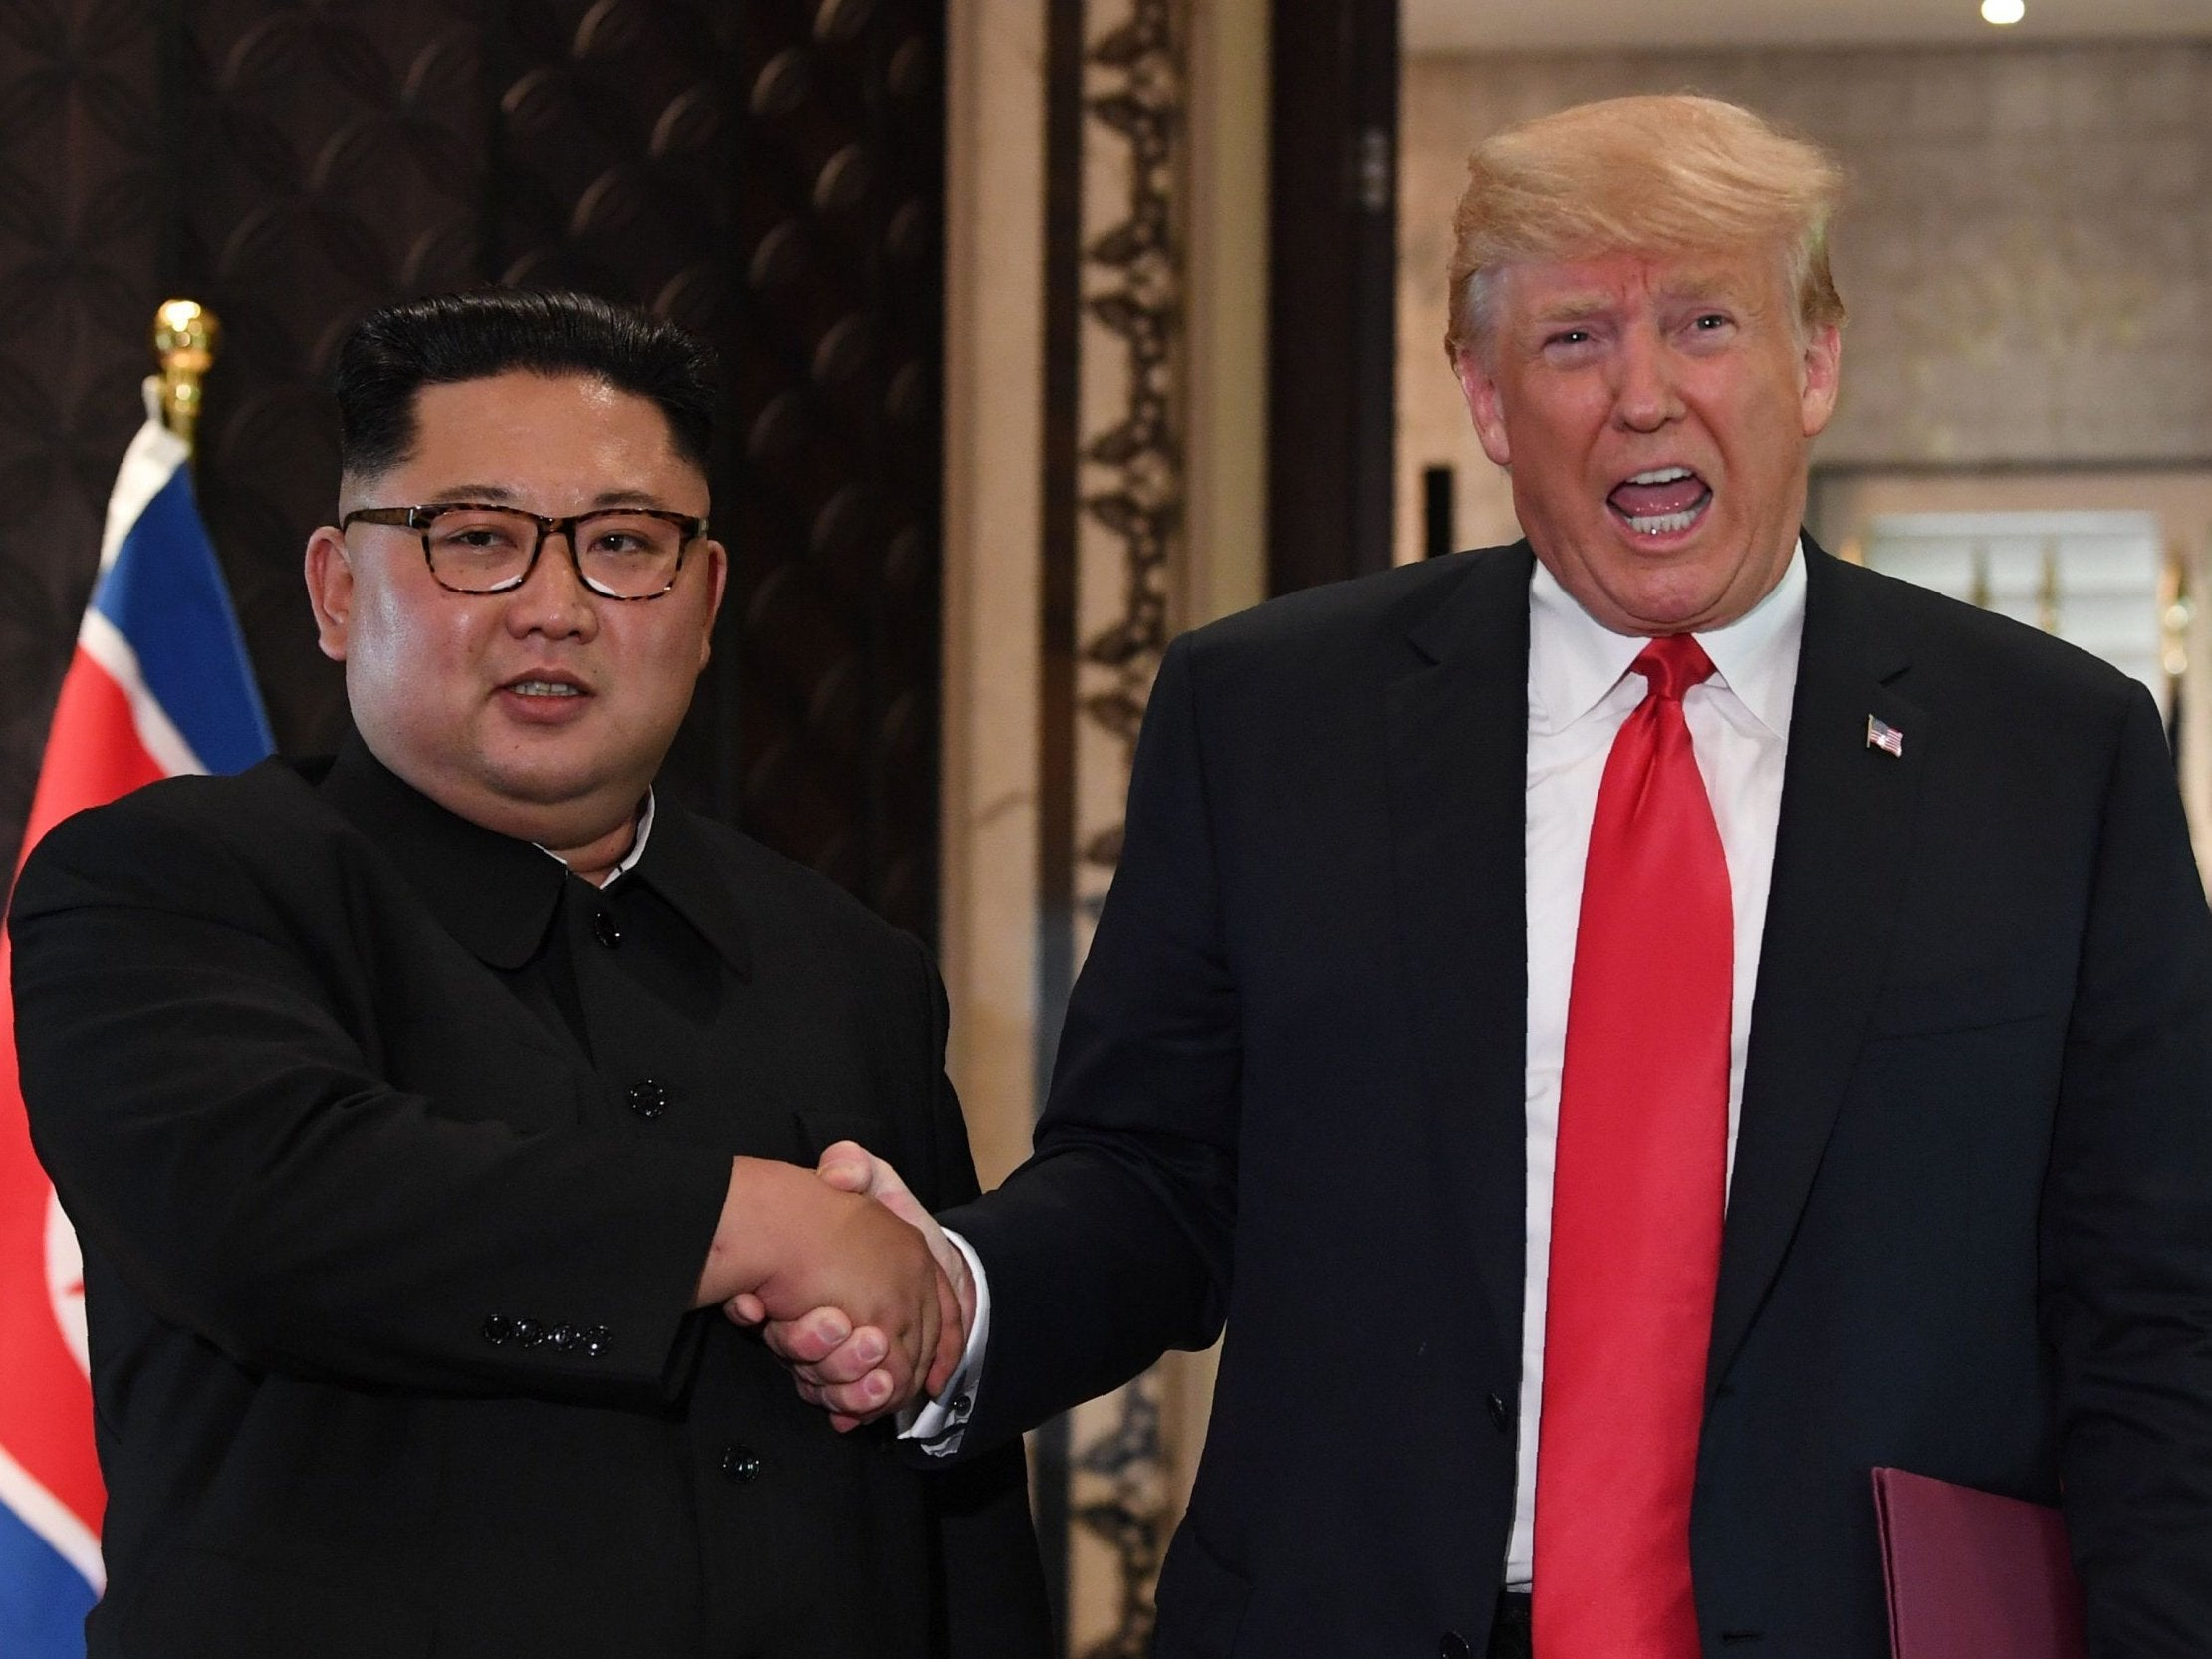 The Sad Thing About Trumps Summit With Kim Jong Un Is It Shows What